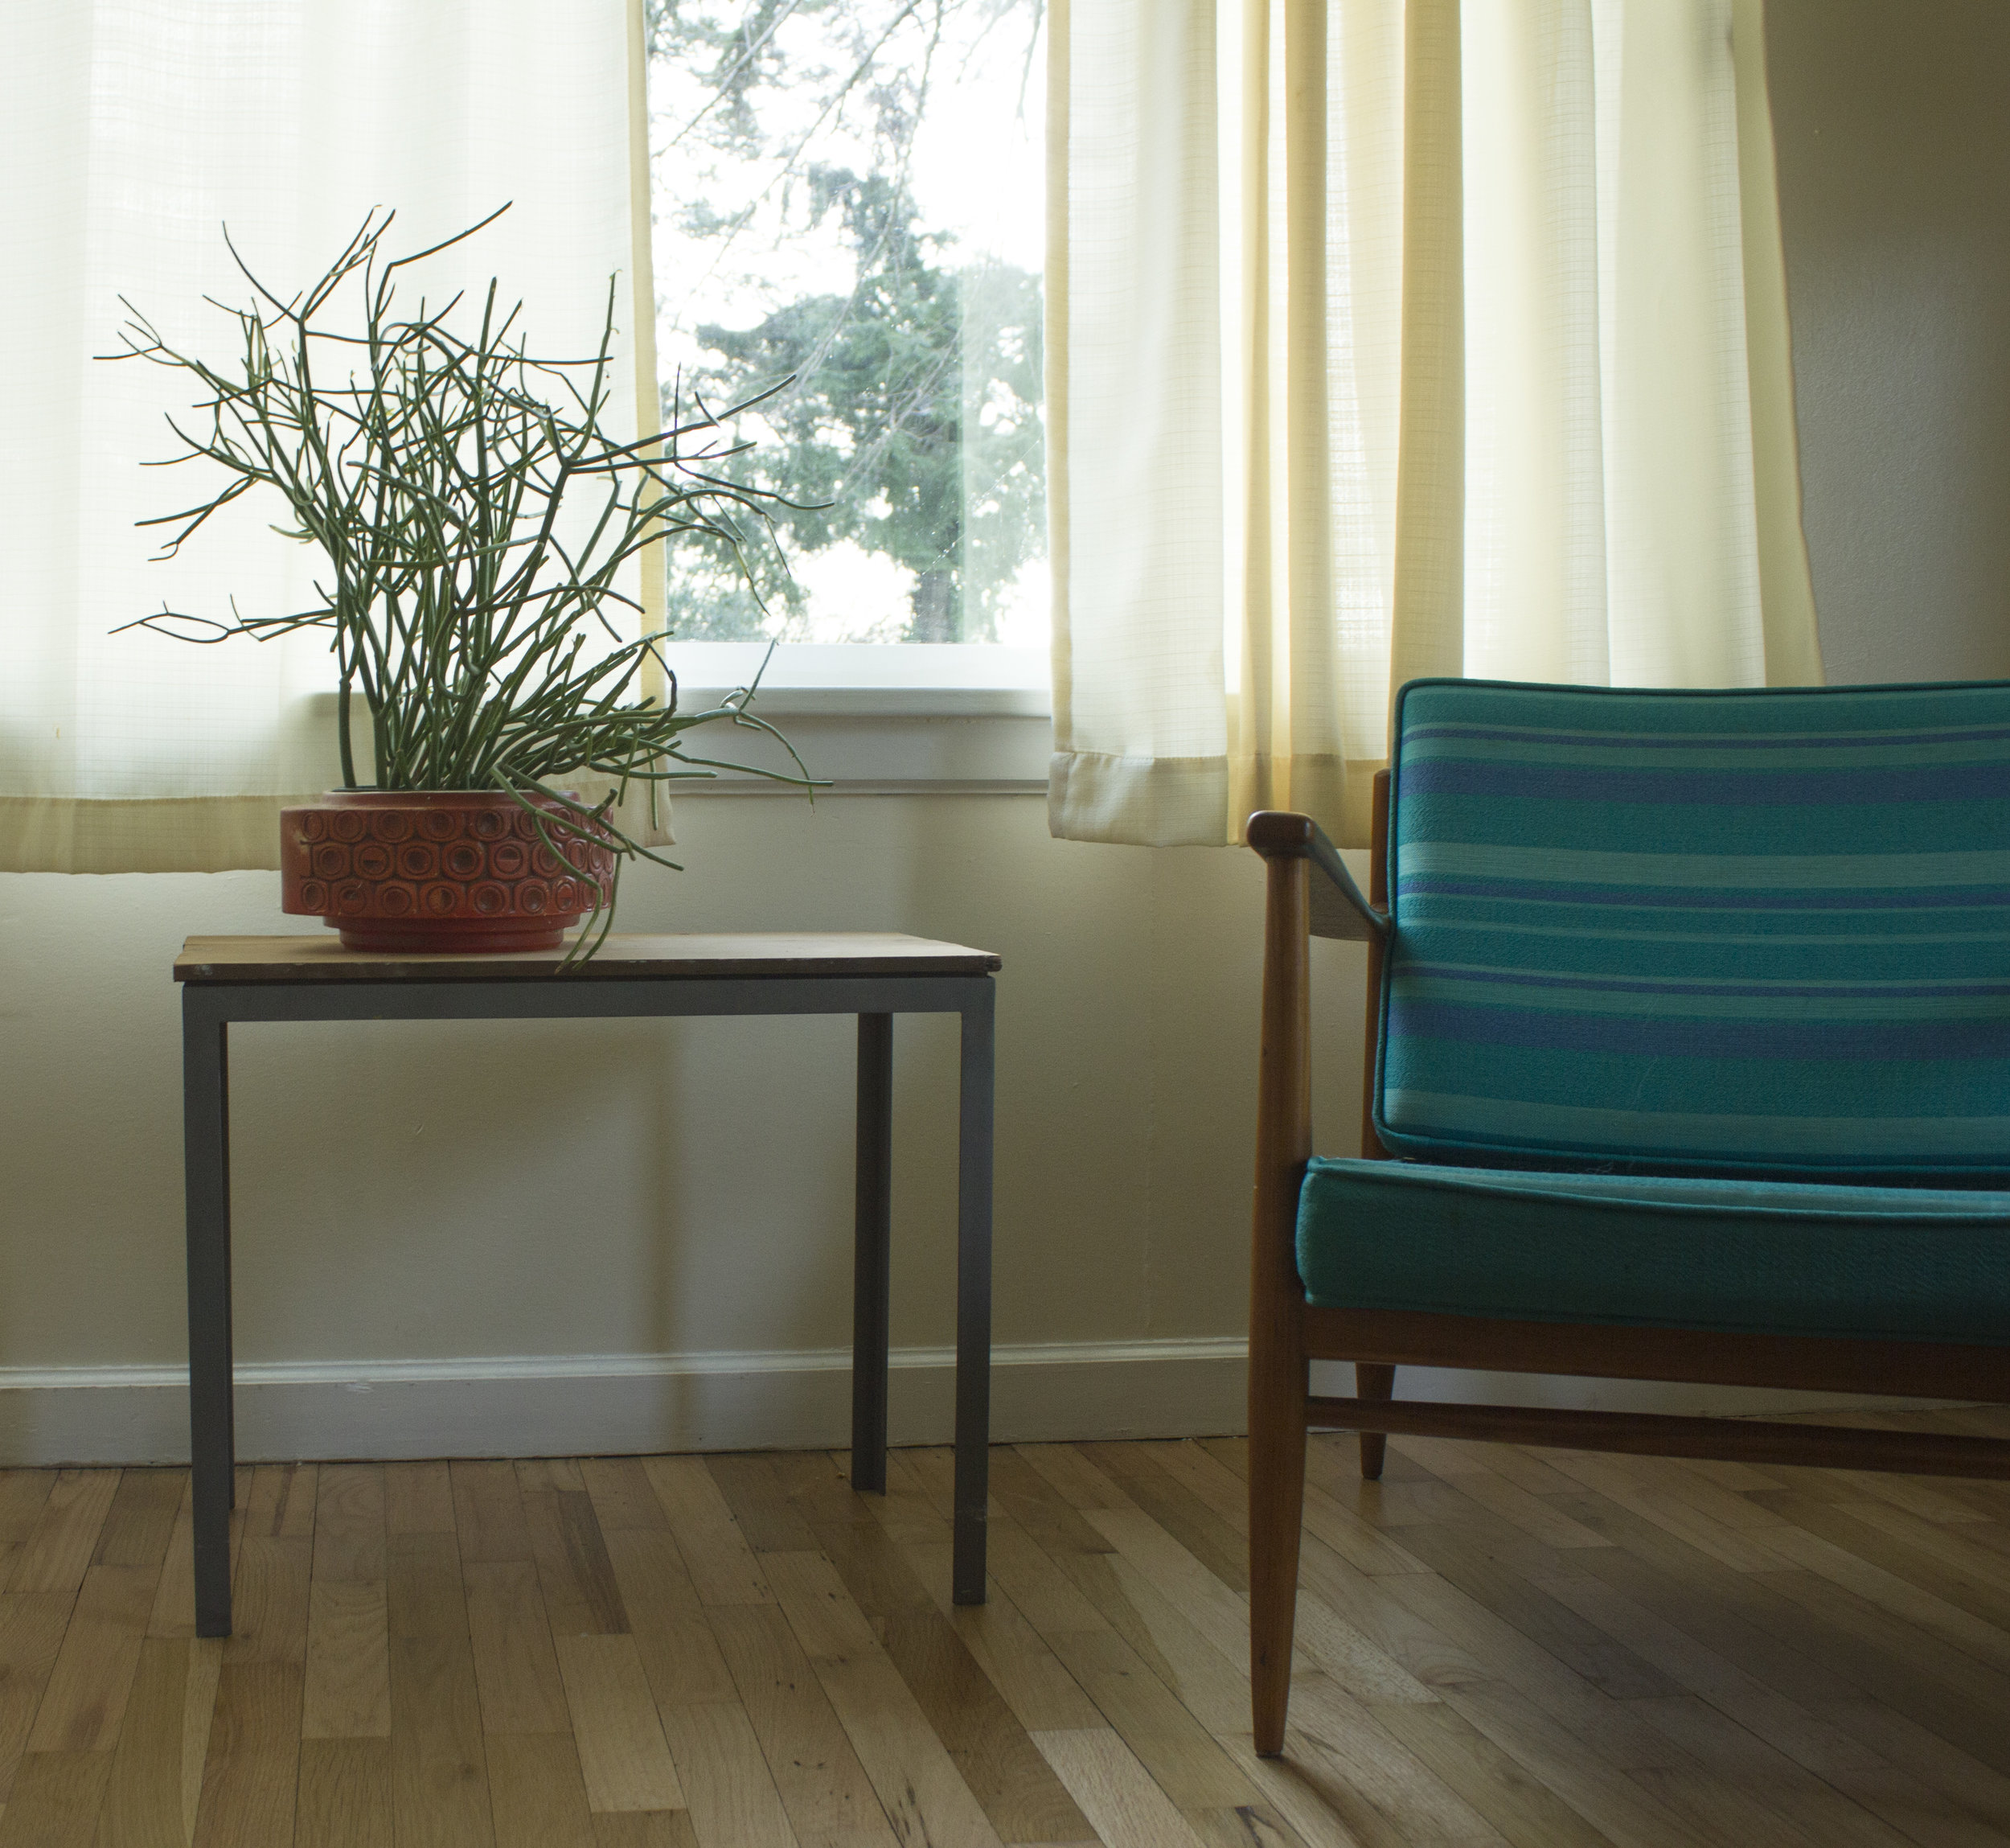 Side Table was built as a model for a kitchen table design.